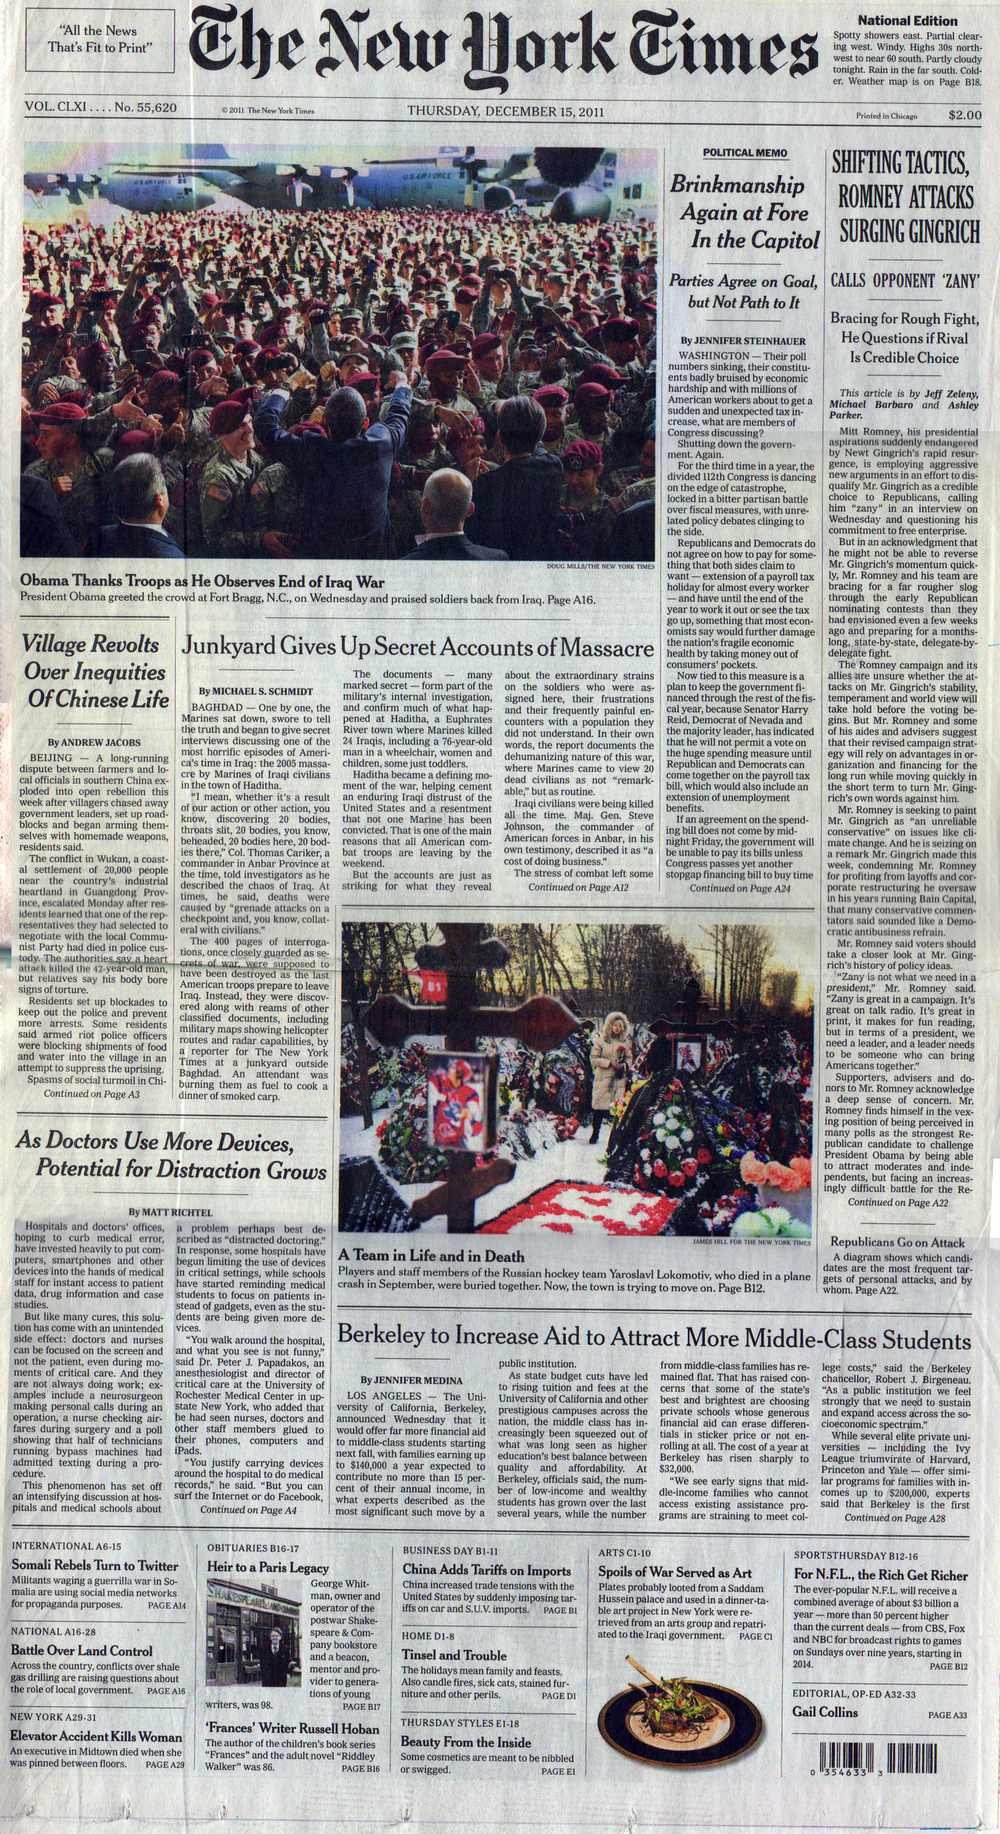 Spoils  appeared on the front page of  The New York Times ' coverage of the end of the Iraq War on December 15, 2011.